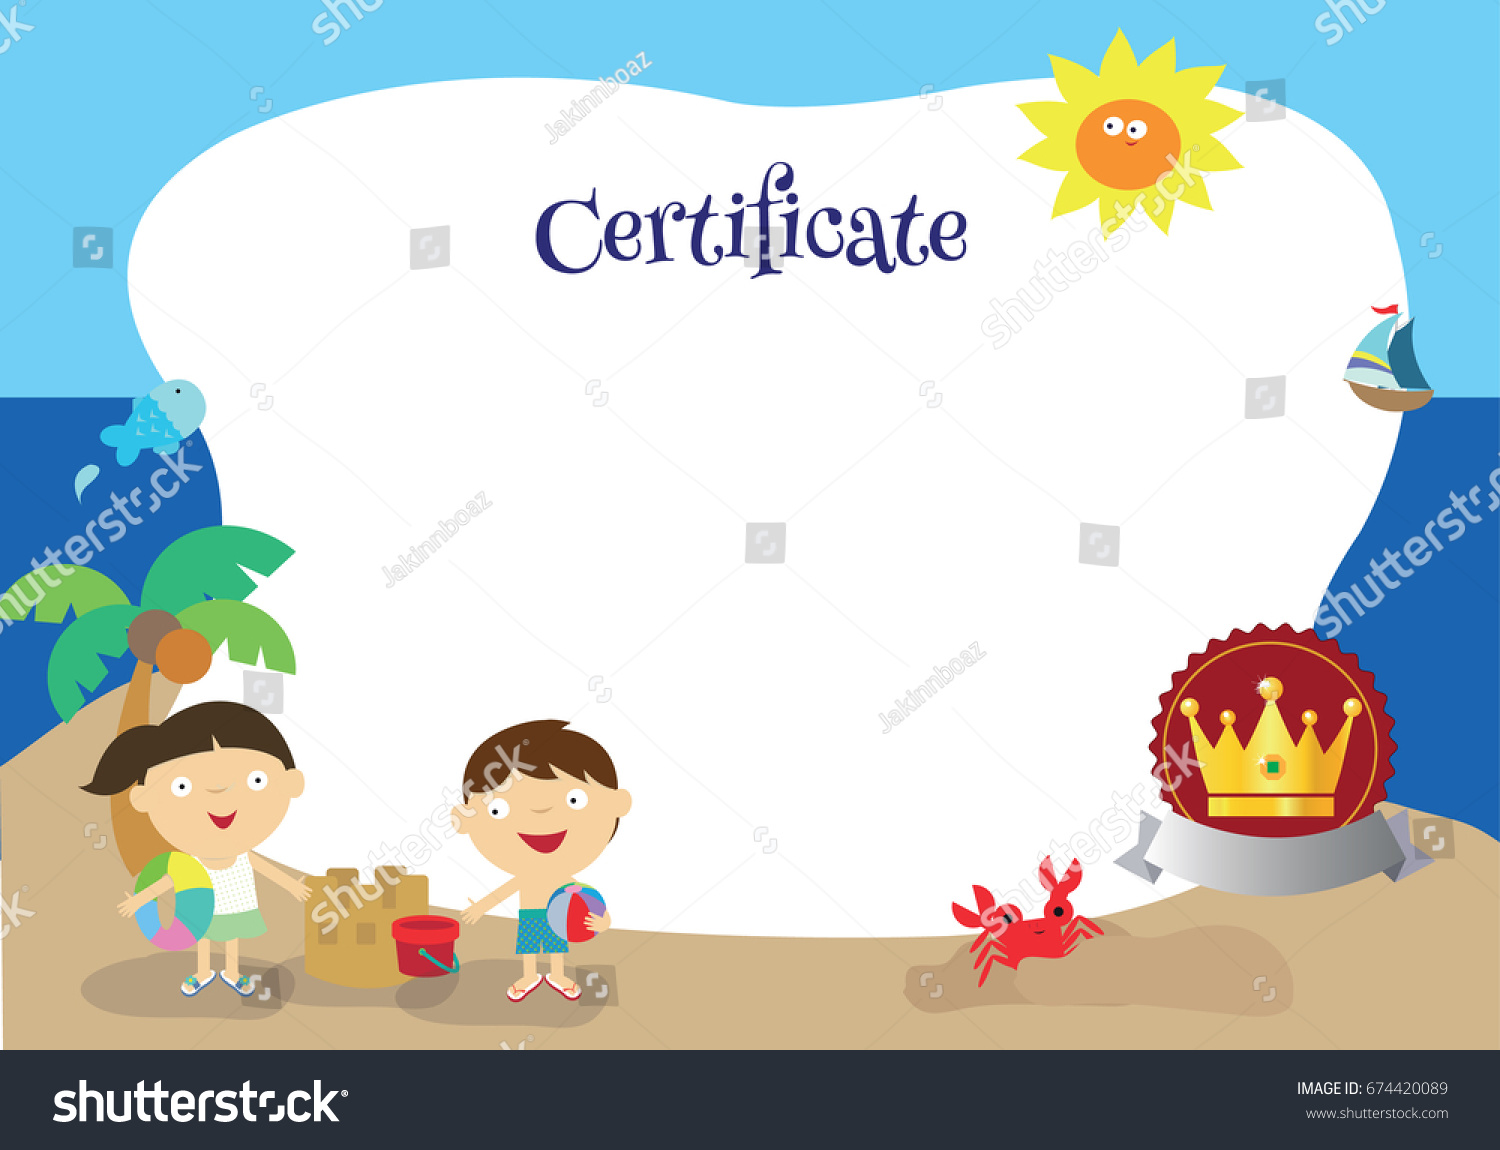 Child certificate template images templates example free download beach themed certificate template palm tree stock vector 674420089 a beach themed certificate template palm tree xflitez Images